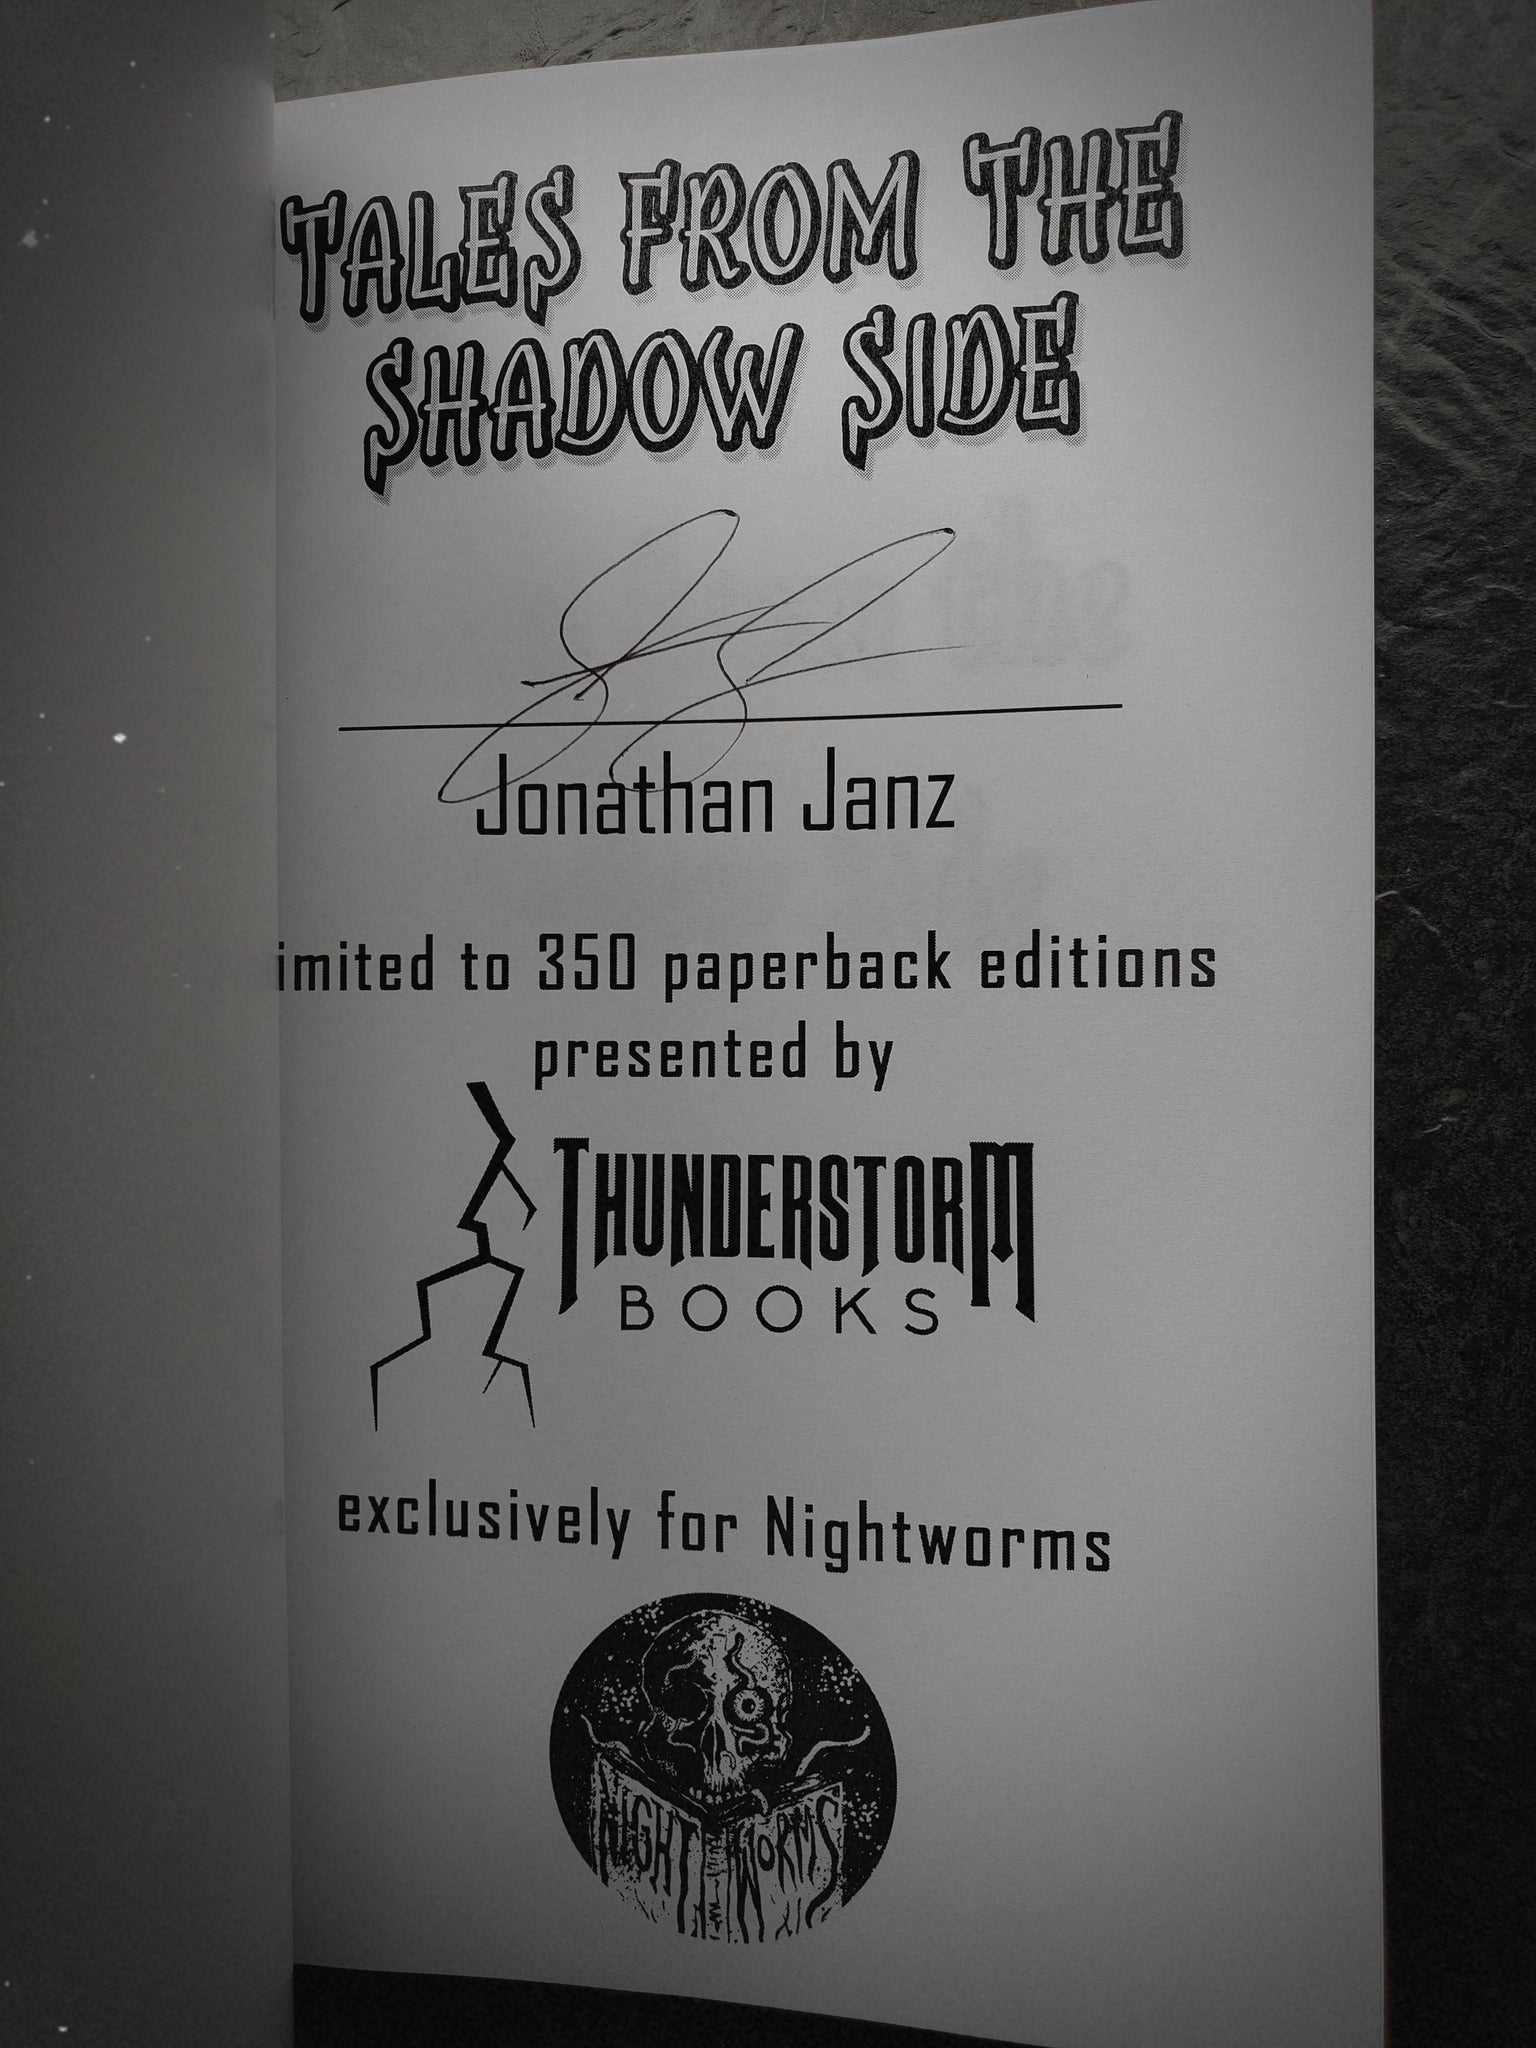 SIGNED, EXCLUSIVE NIGHTWORMS EDITION Tales from the Shadow Side by Jonathan Janz